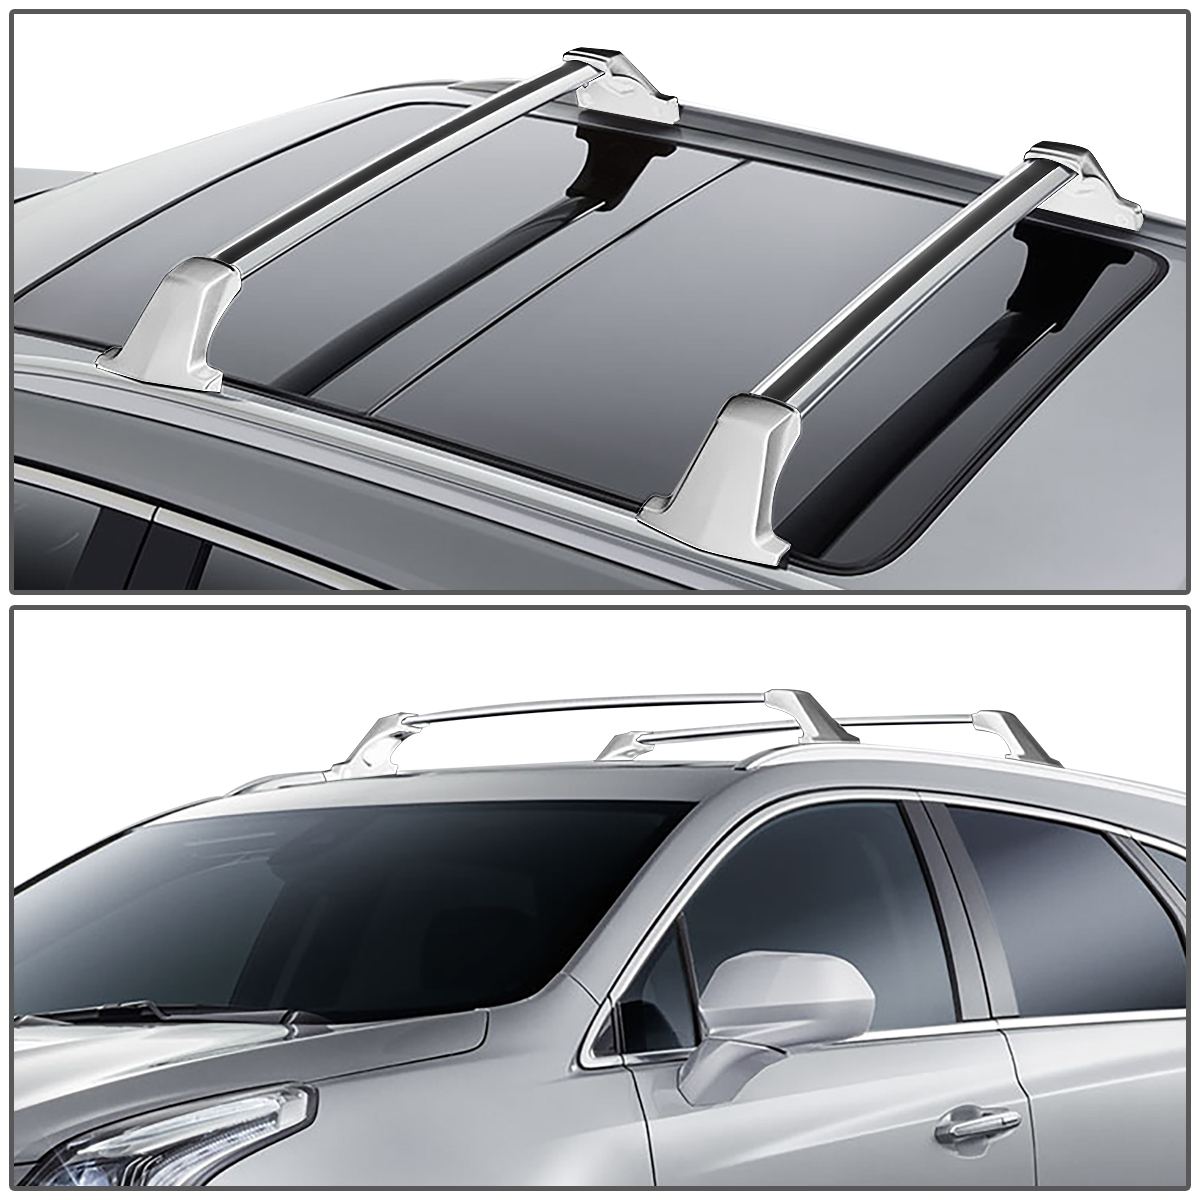 Pair OE Style Aluminum Roof Rack Rail Cross Bars Cargo Carrier Replacement for Cadillac XT5 17-19